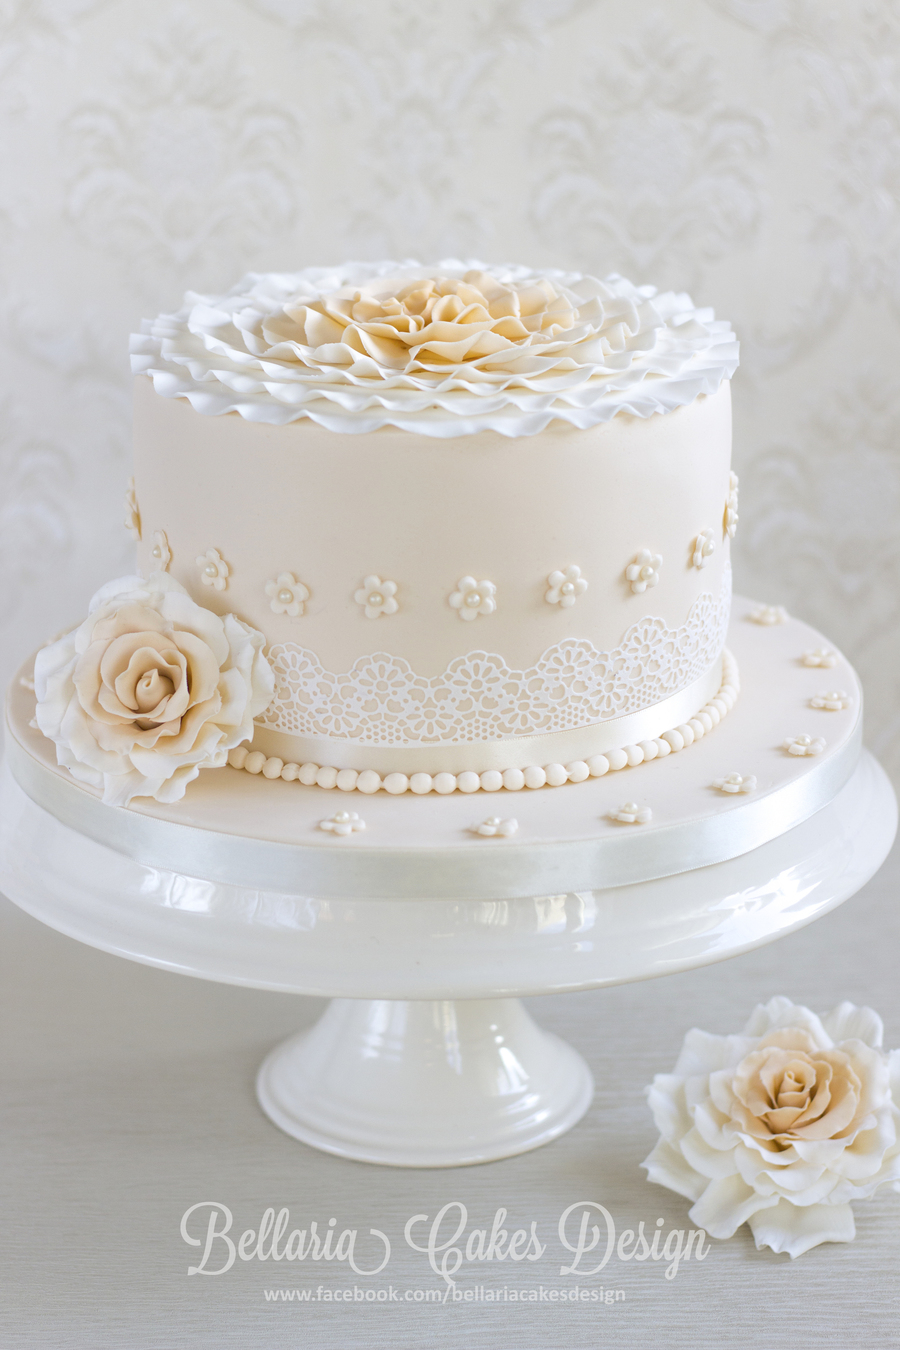 A 20Th Wedding Anniversary Cake   CakeCentral com I made this cake for a 20th wedding anniversary cake for my friends  They  are such a lovely couple  This cake is filled with champagne cream and  raspberry